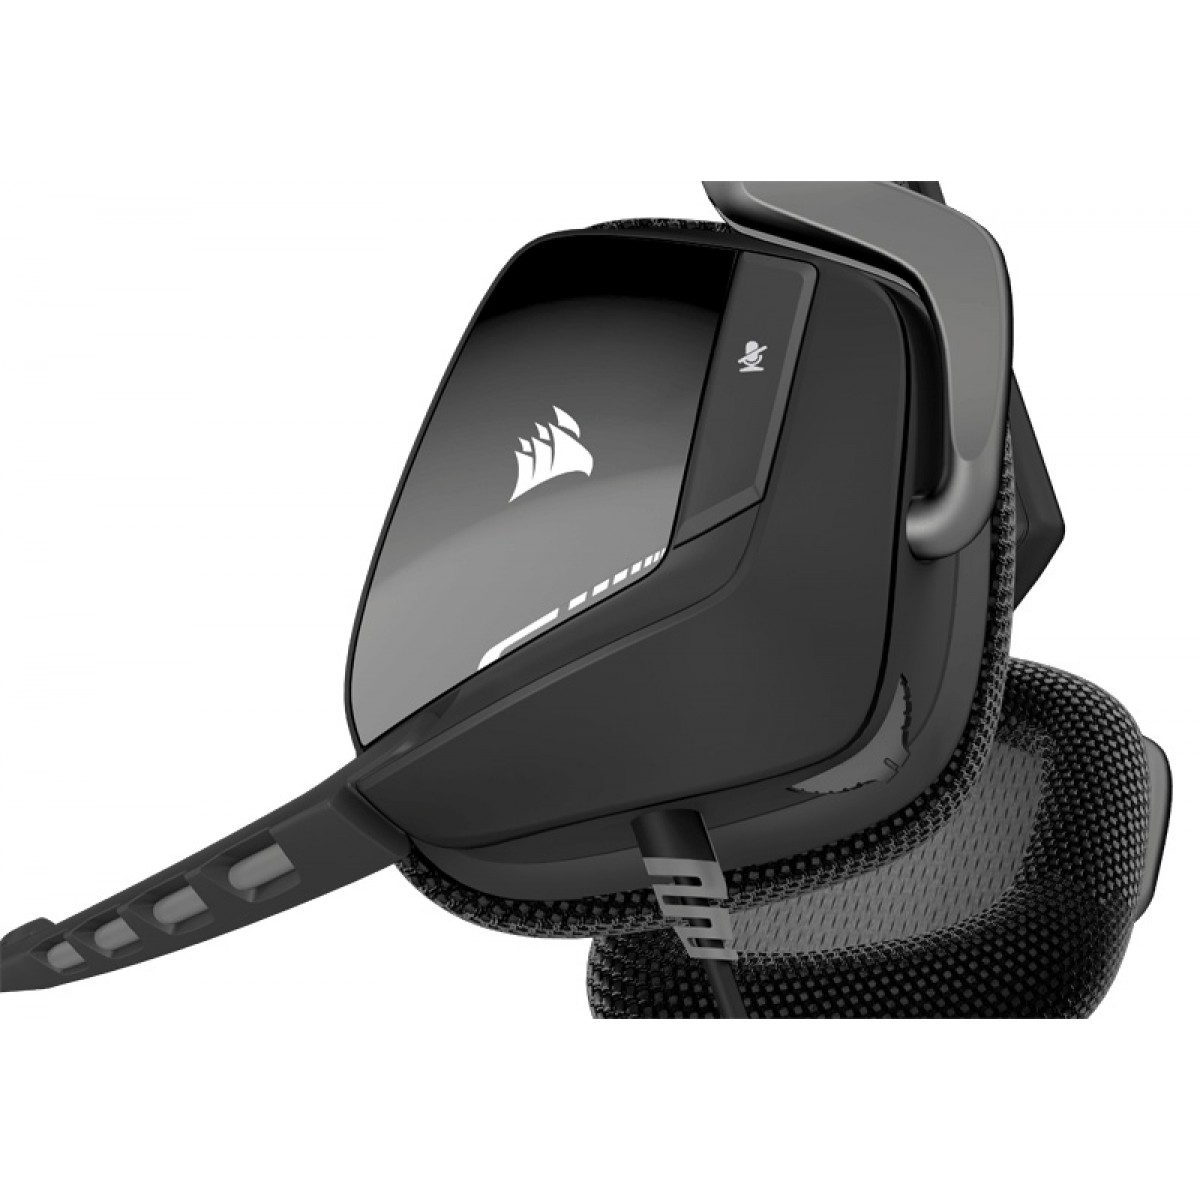 Corsair VOID Surround Hybrid Stereo Gaming Headset with Dolby 7.1 USB Adapter - Carbon